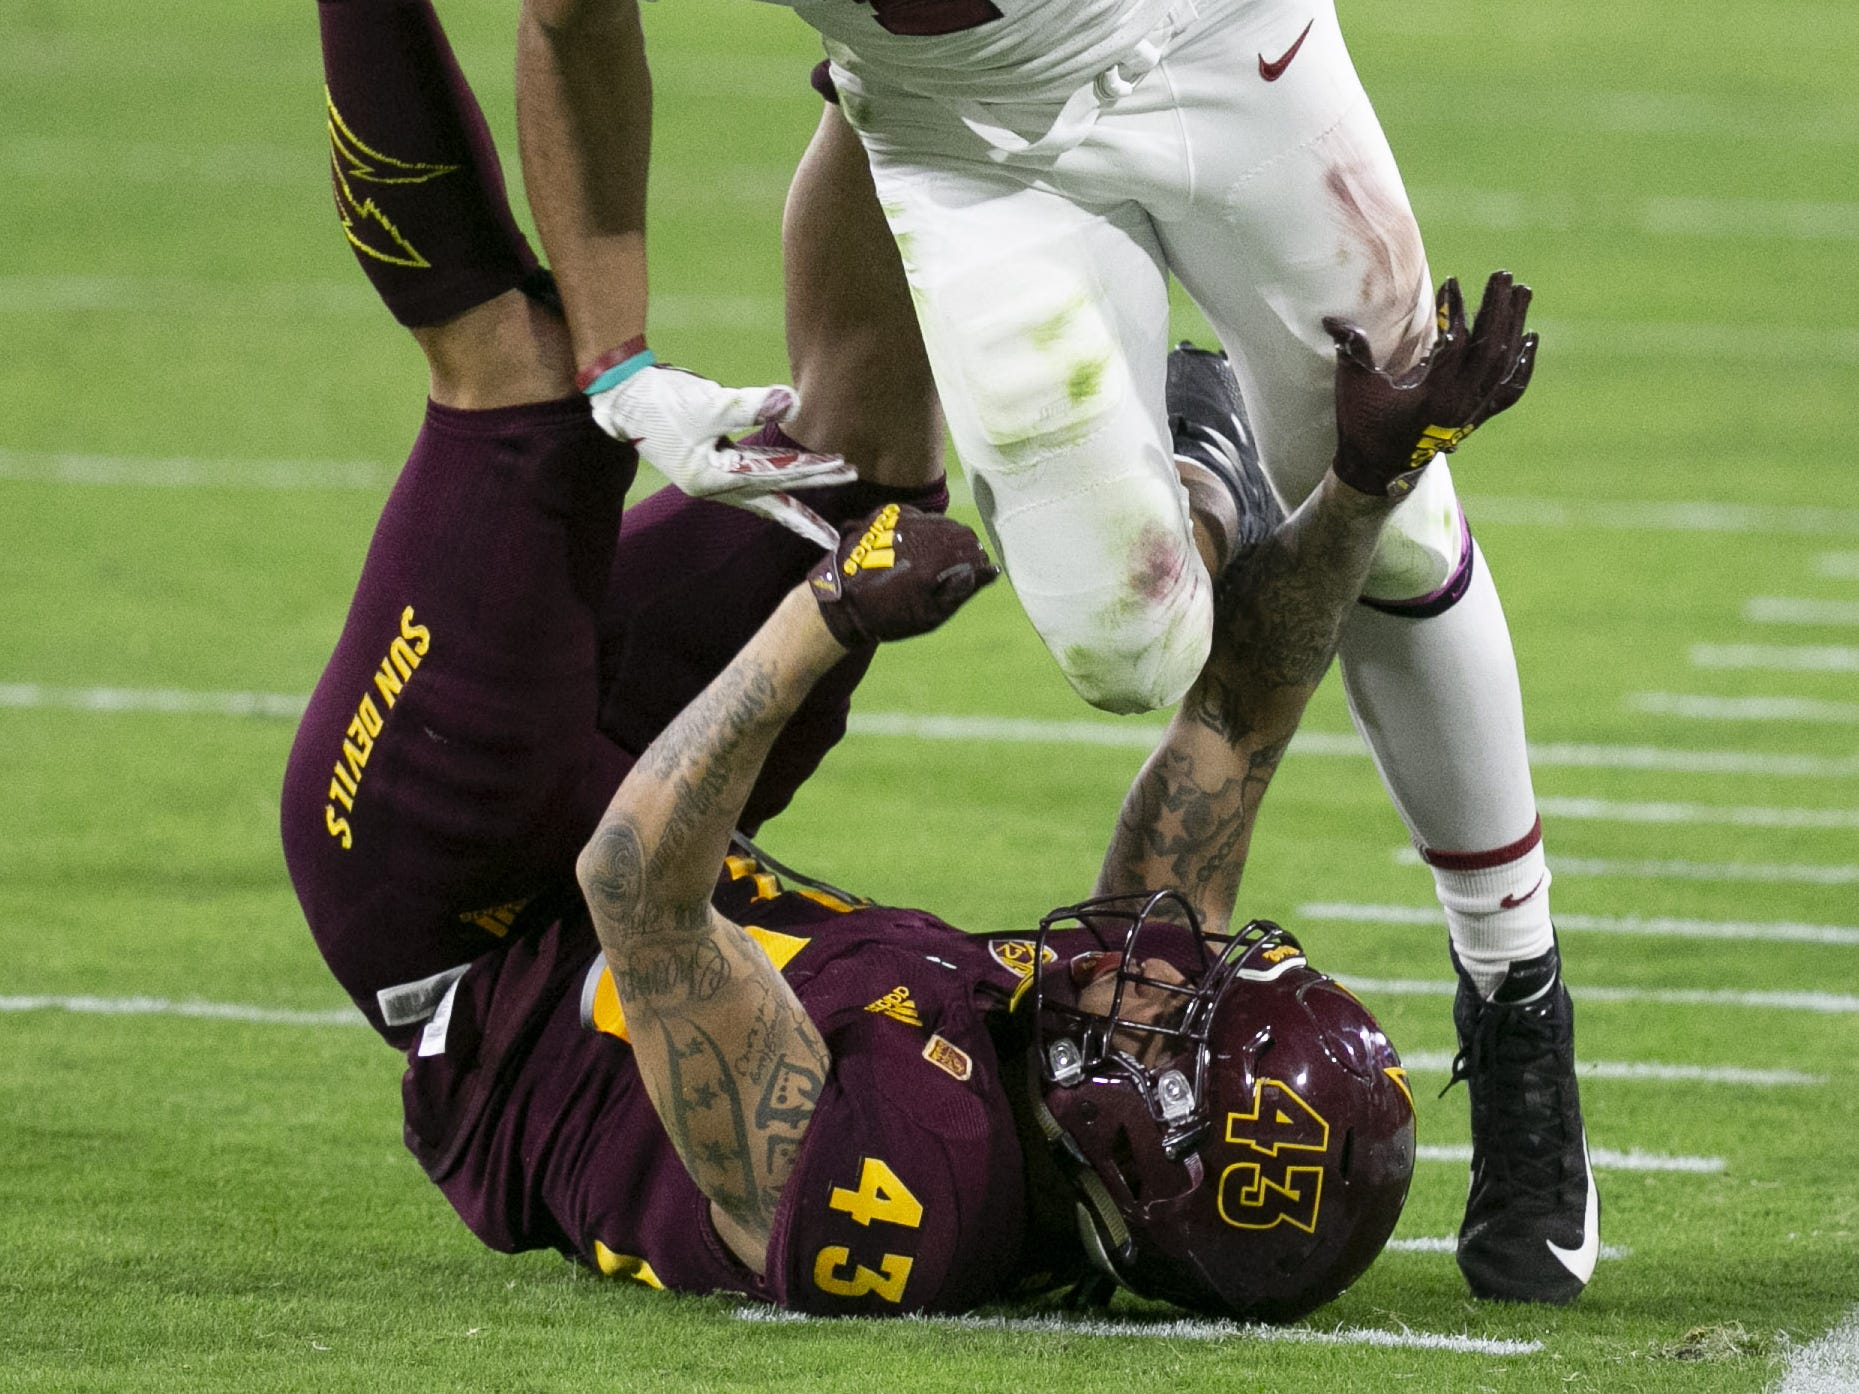 Stanford receiver JJ Arcega-Whiteside runs over ASU Jalen Harvey during the third quarter of the Pac-12 college football game at Sun Devil Stadium in Tempe on October 18, 2018.